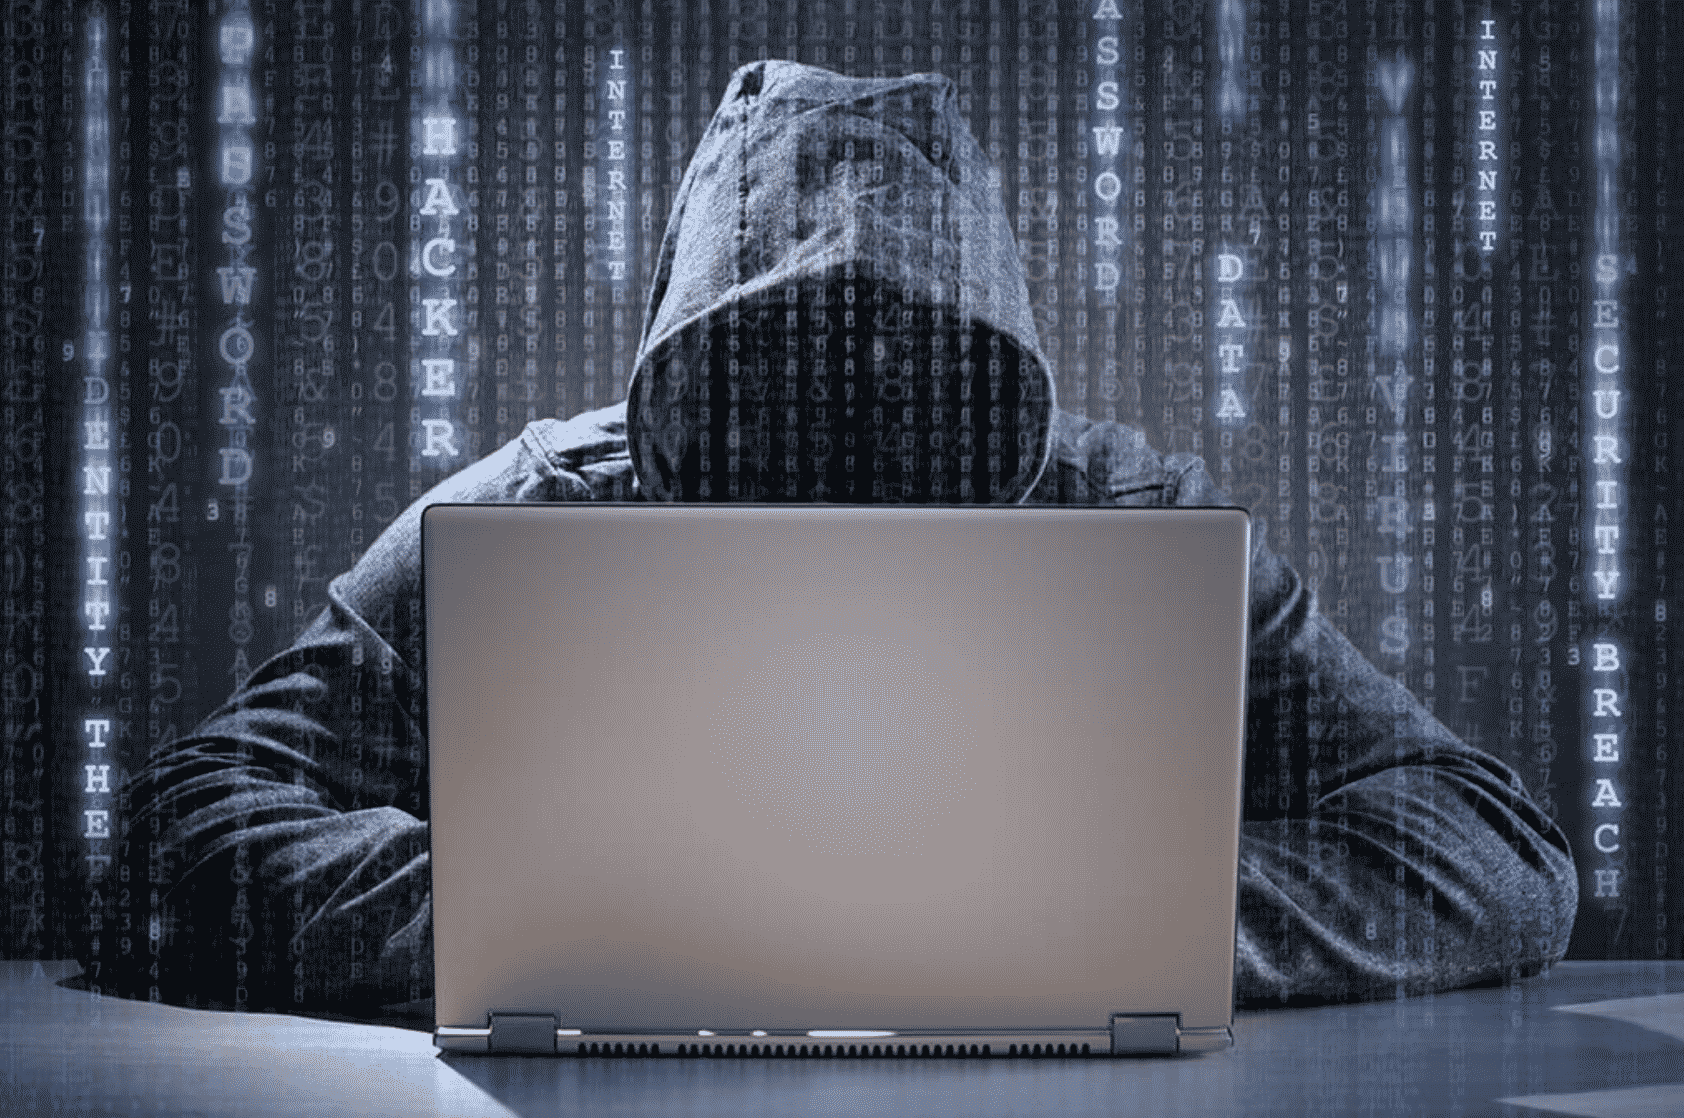 Read more about the article The 5 Worst Data Breaches of All Time